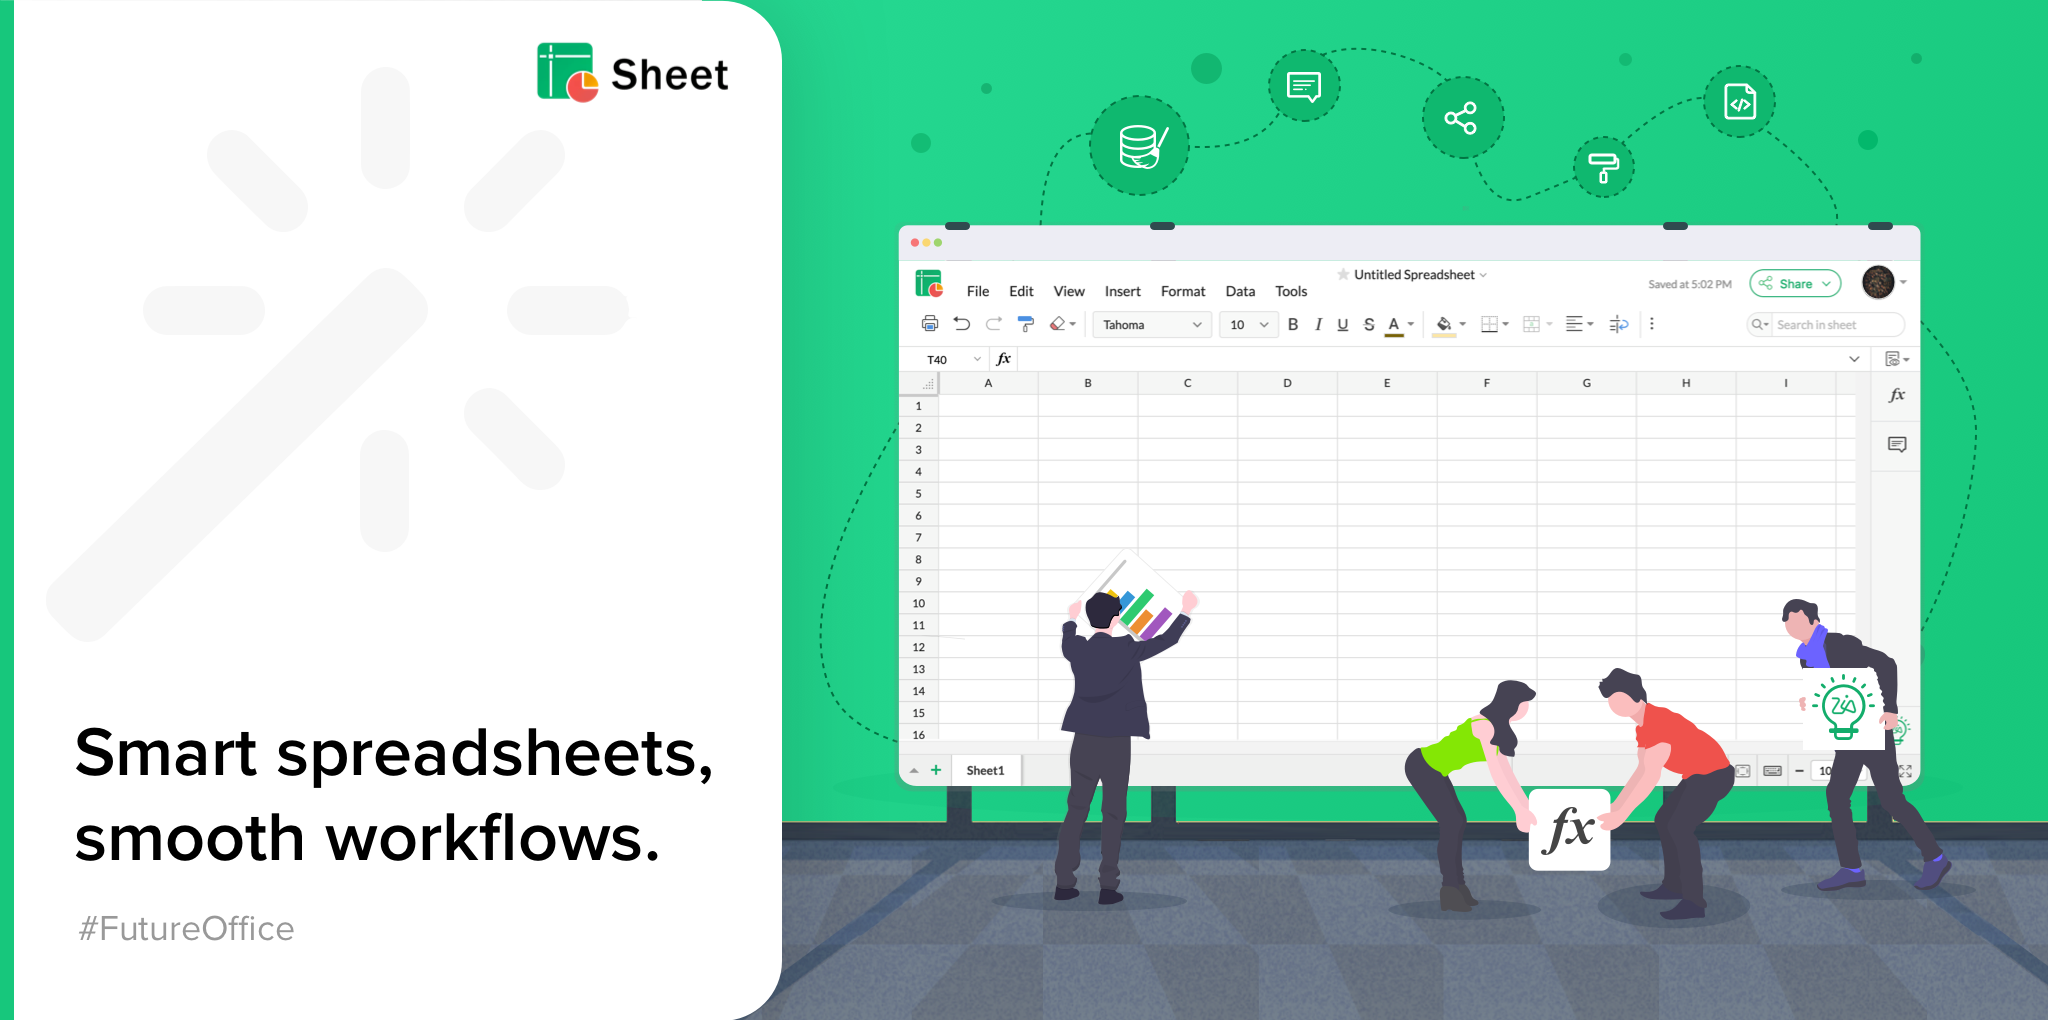 Introducing Sheet 5—Bringing you smarter analytics and new integrations